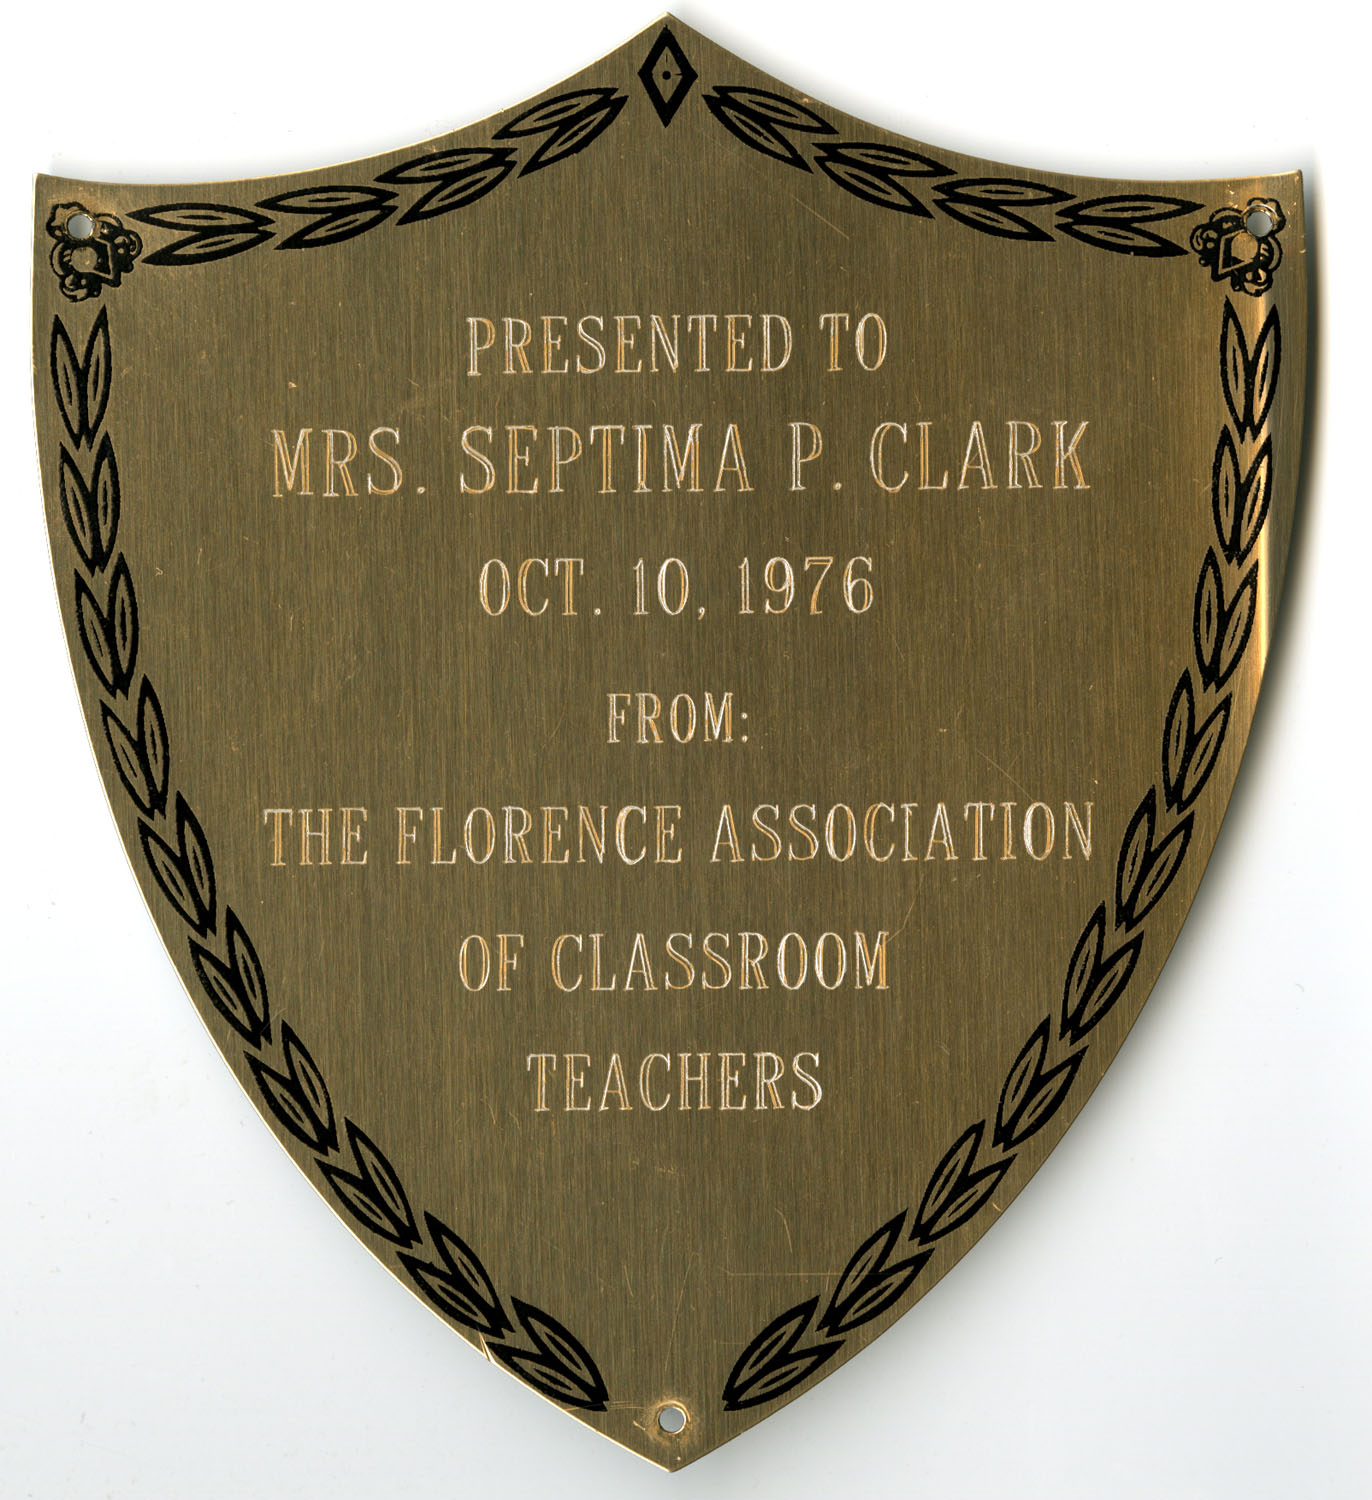 Plaque, October 10, 1976